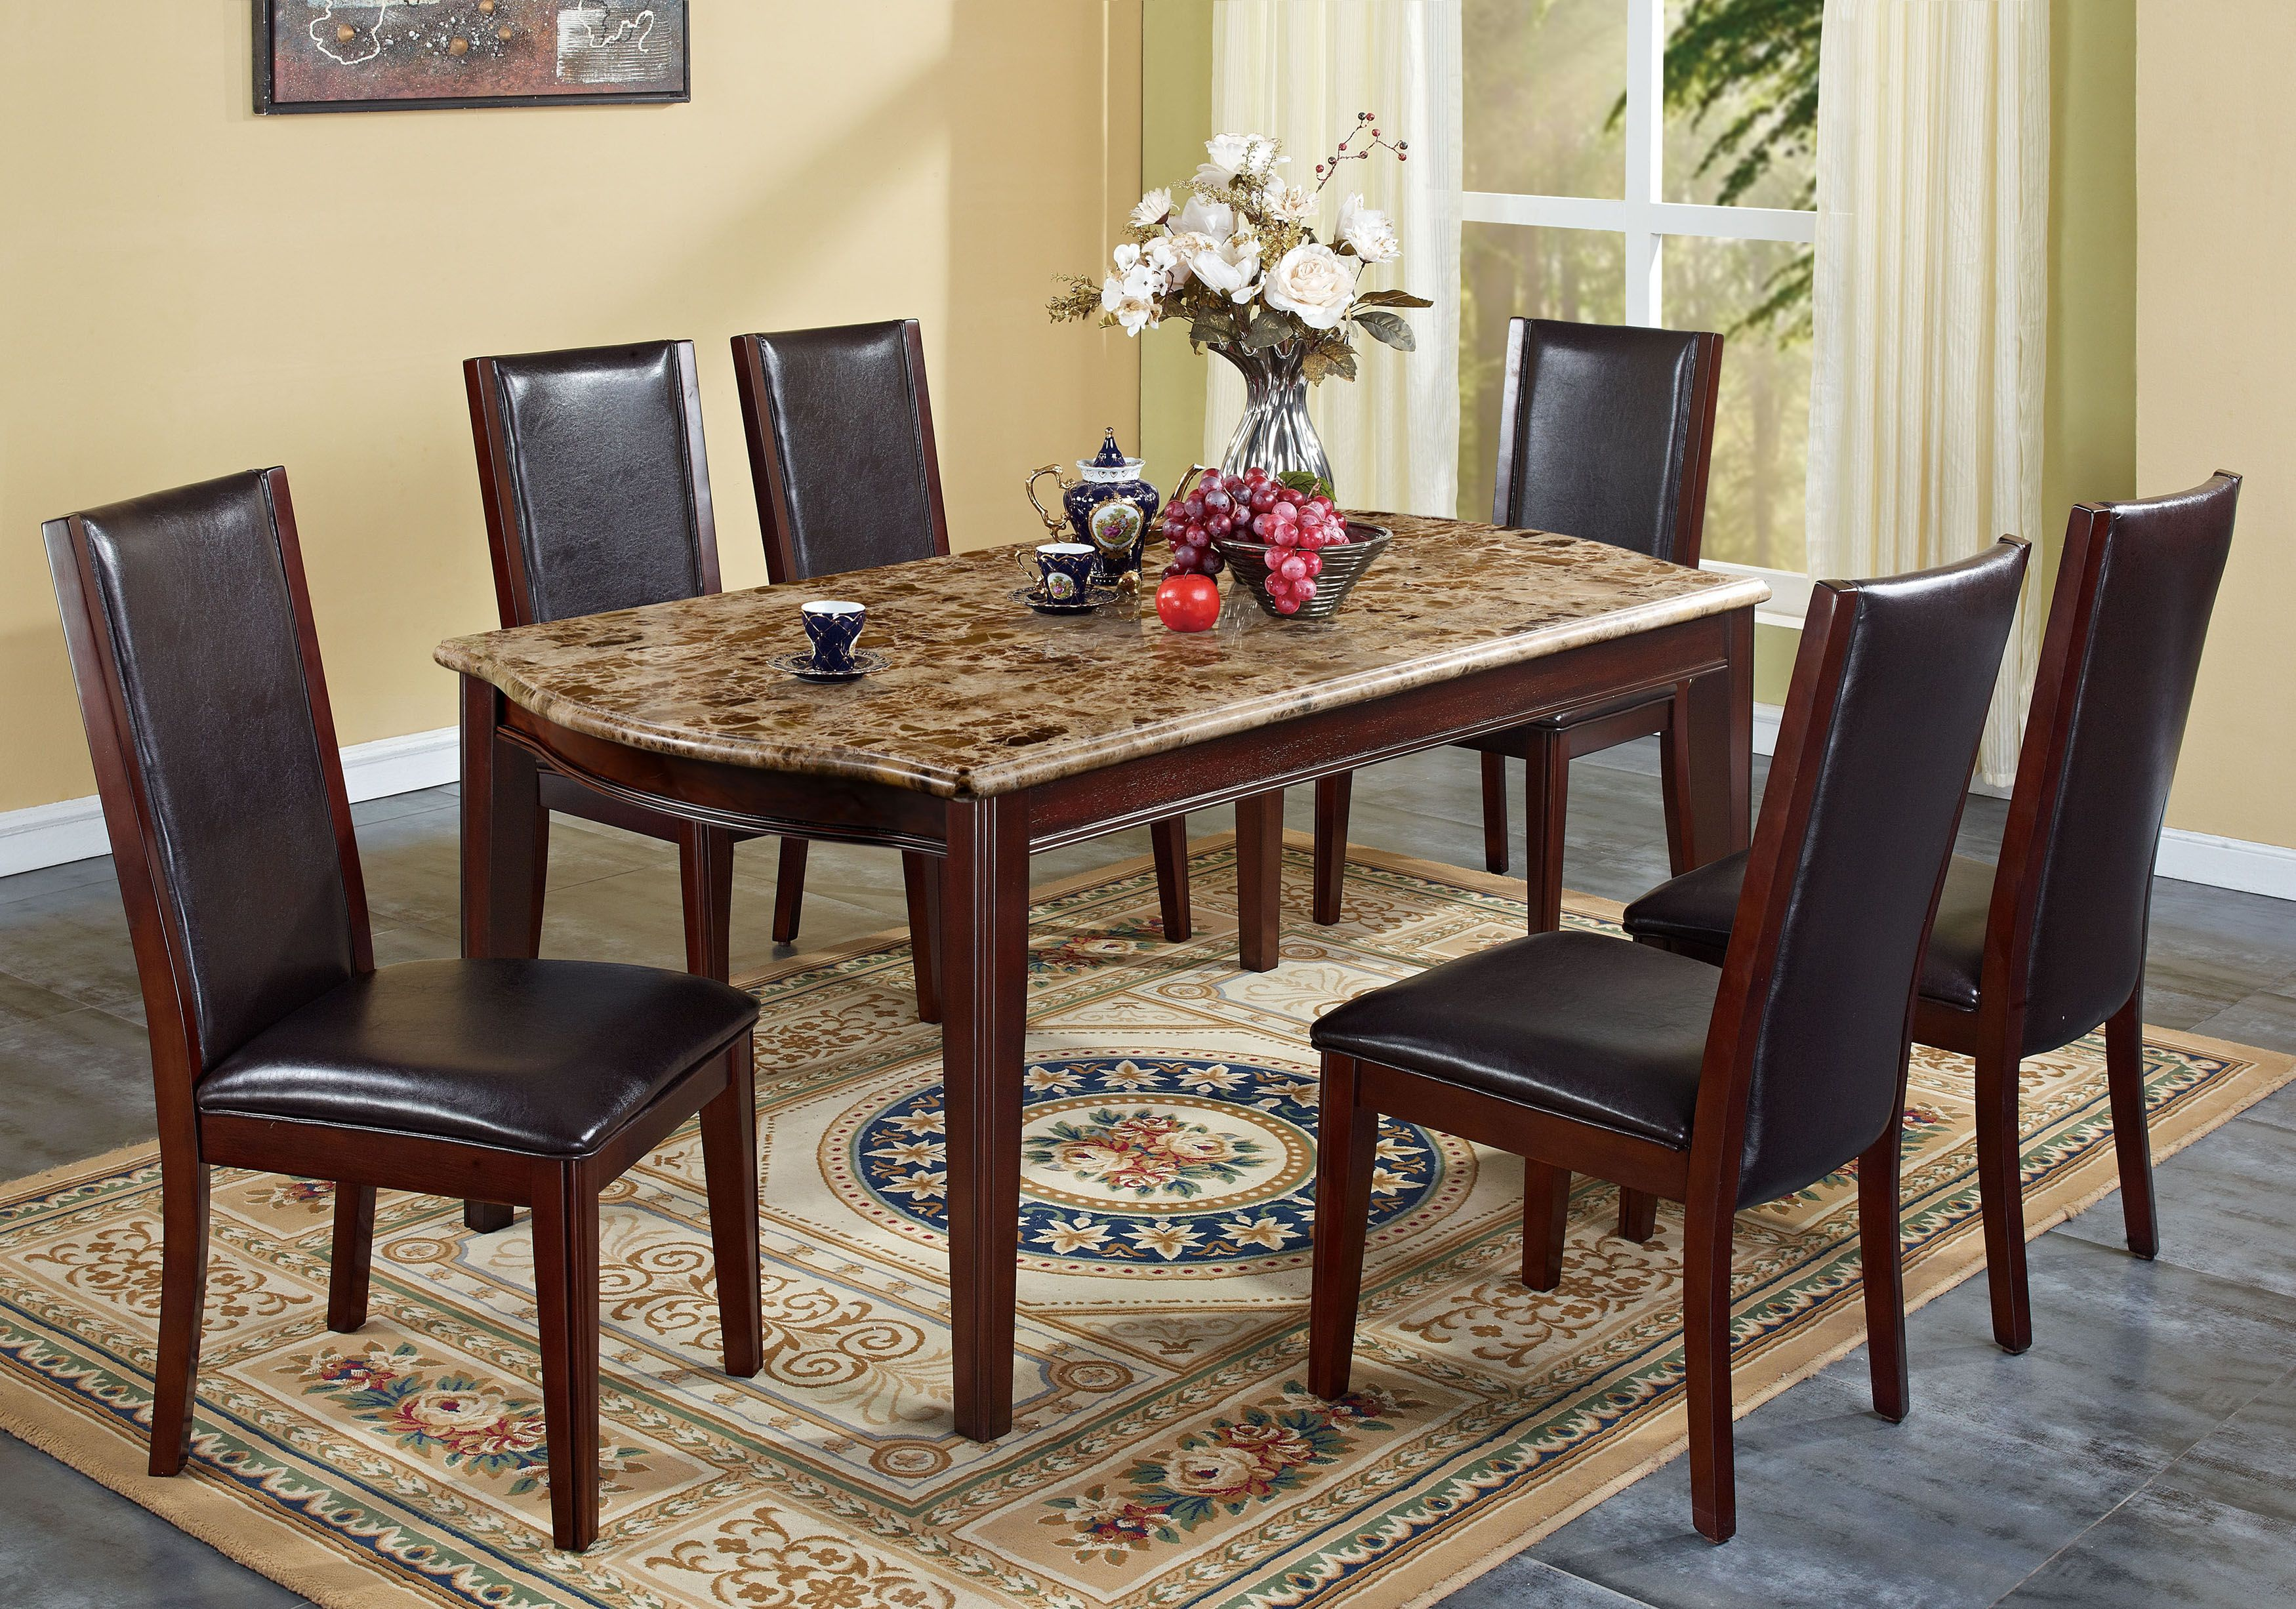 Overstock Com Online Shopping Bedding Furniture Electronics Jewelry Clothing More Unique Dining Room Unique Dining Room Table Dining Room Design